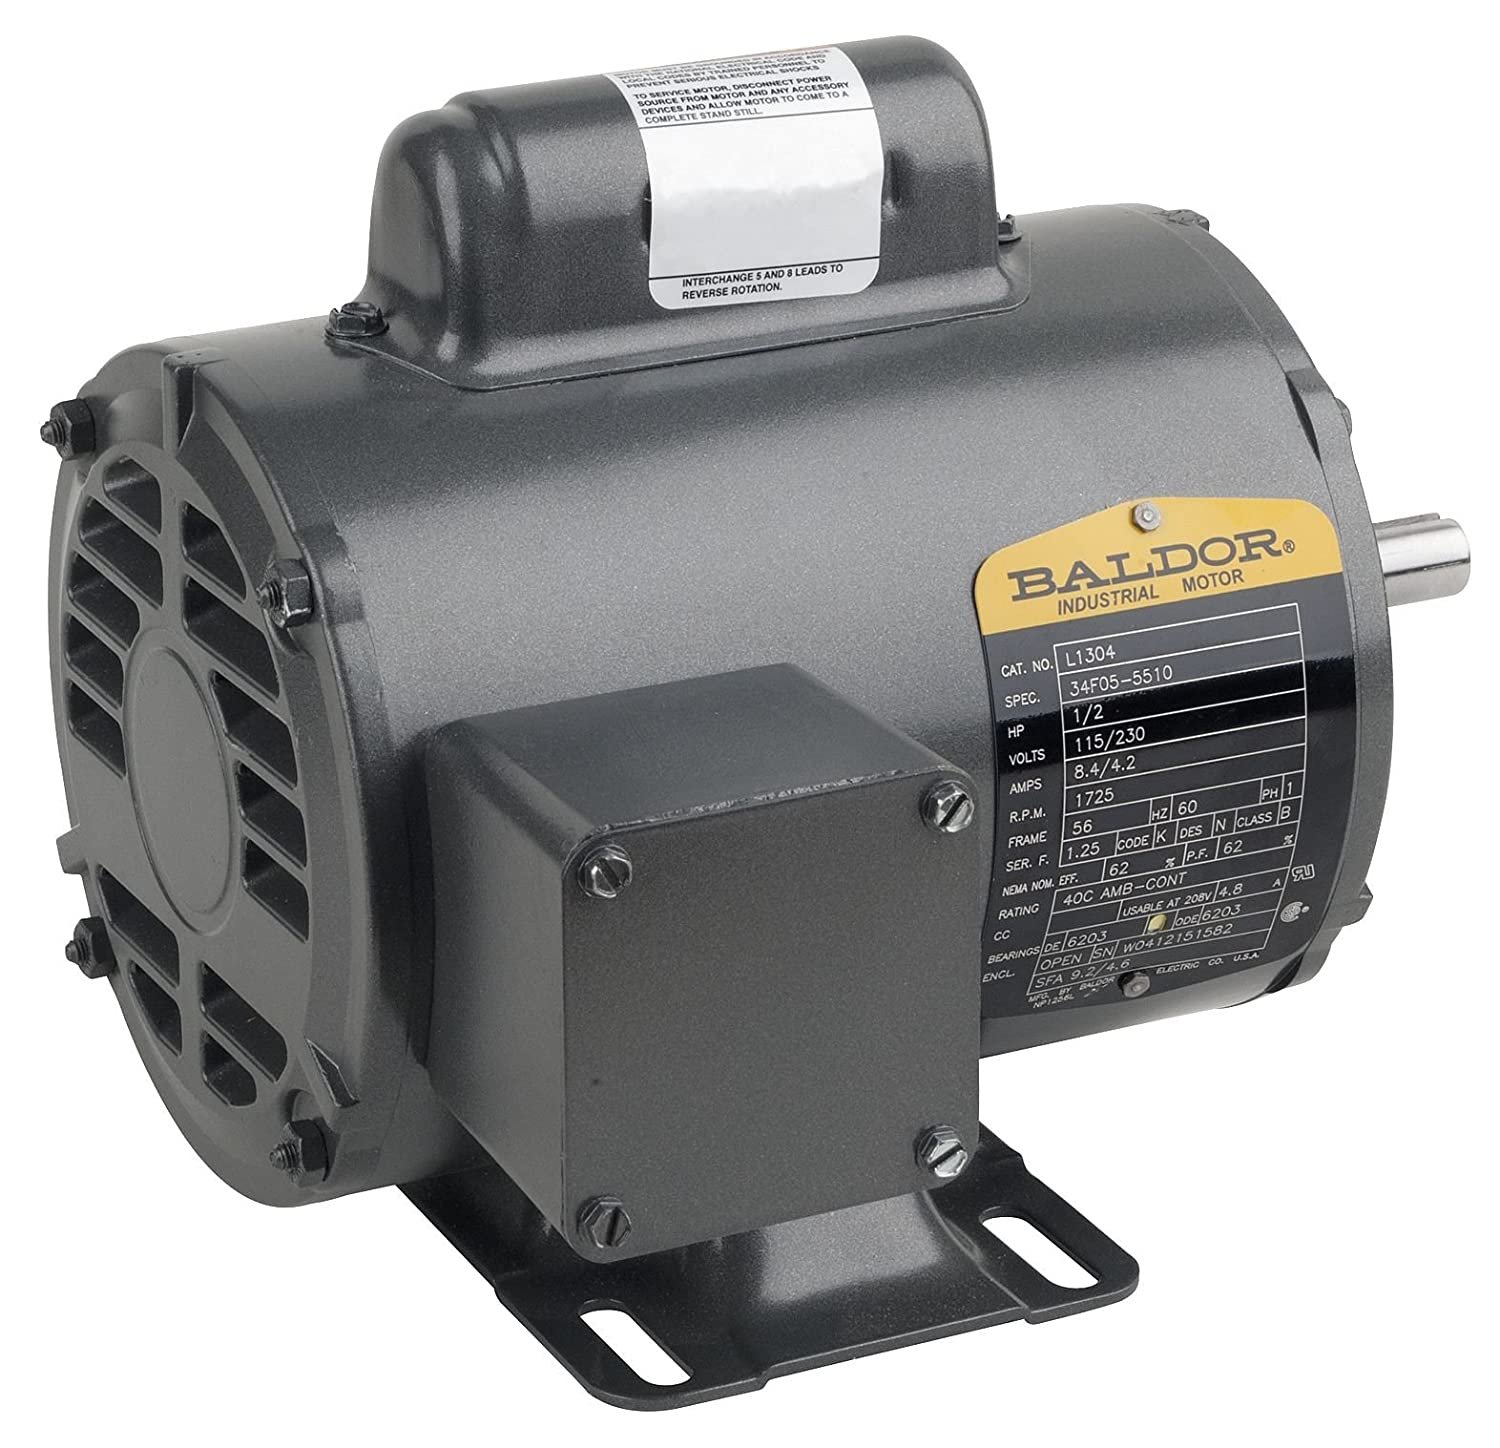 F1 BALDOR M3538//35 56 Frames TEFC 3511M 3 Phase Enclosed Motors 3PH N 1740 RPM 0.5 hp 60 Hz